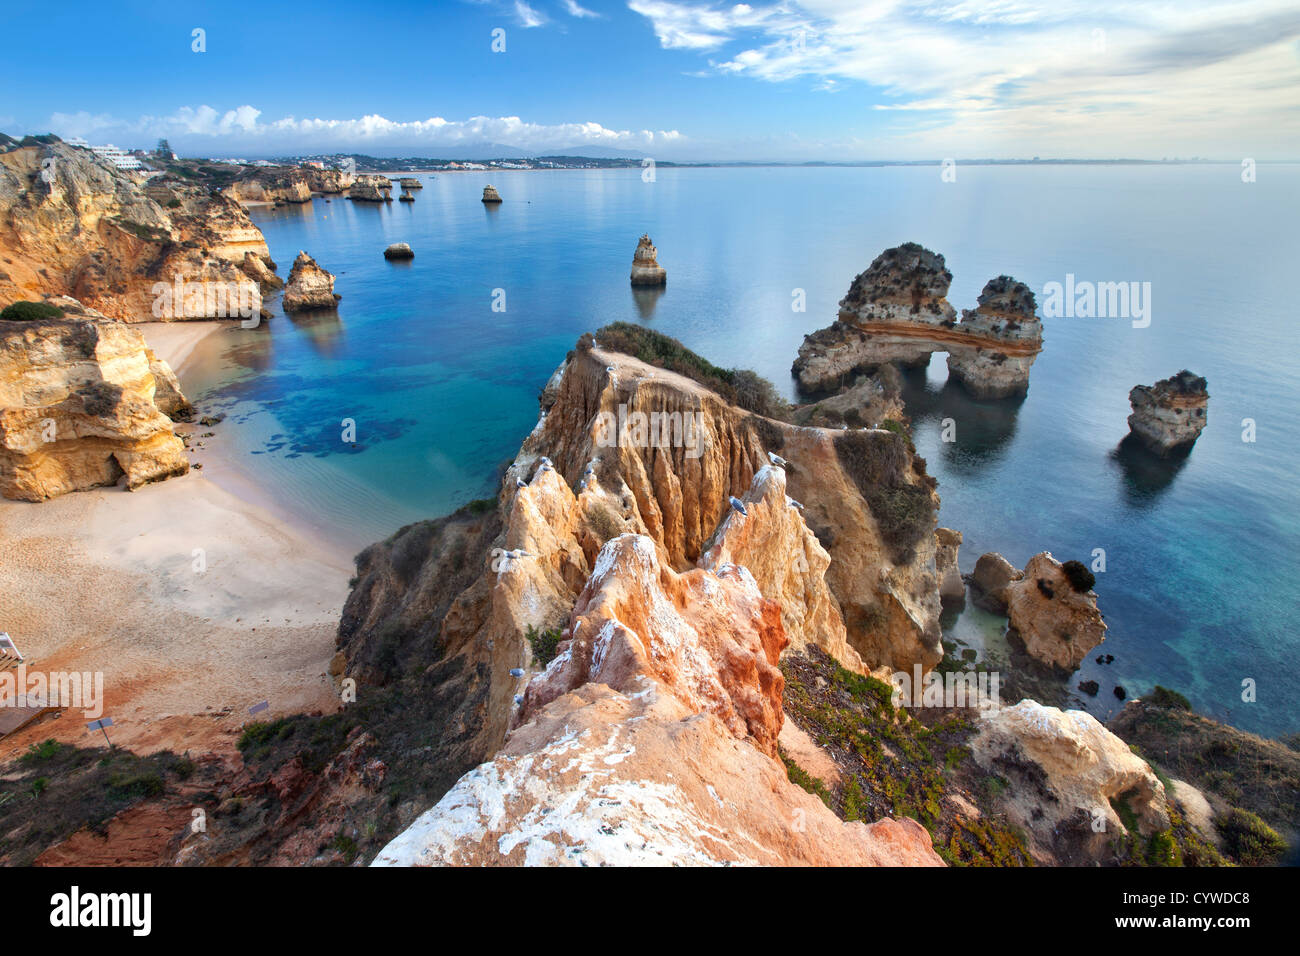 Coastline of the Algarve near Lagos, Portugal. - Stock Image